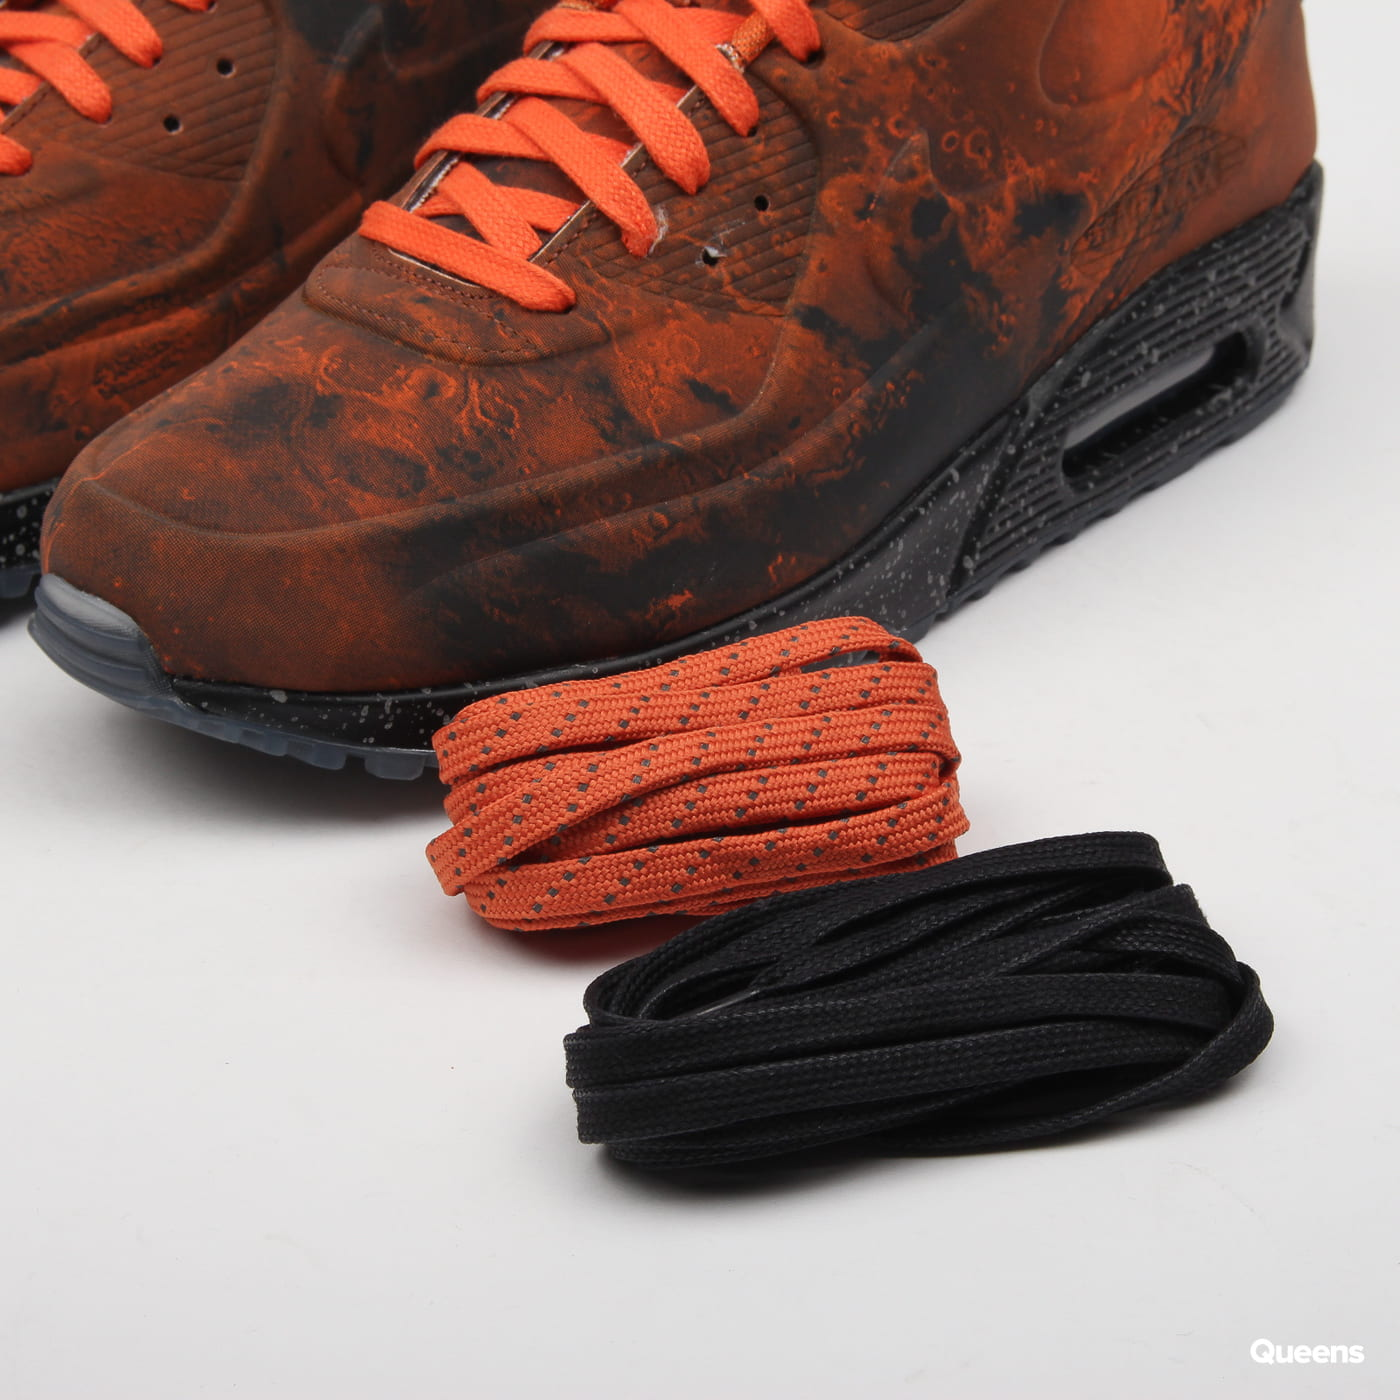 finest selection 6c385 eb7fc Zoom in Zoom in Zoom in Zoom in Zoom in Zoom in Zoom in. Nike Air Max 90 QS  Mars Landing ...